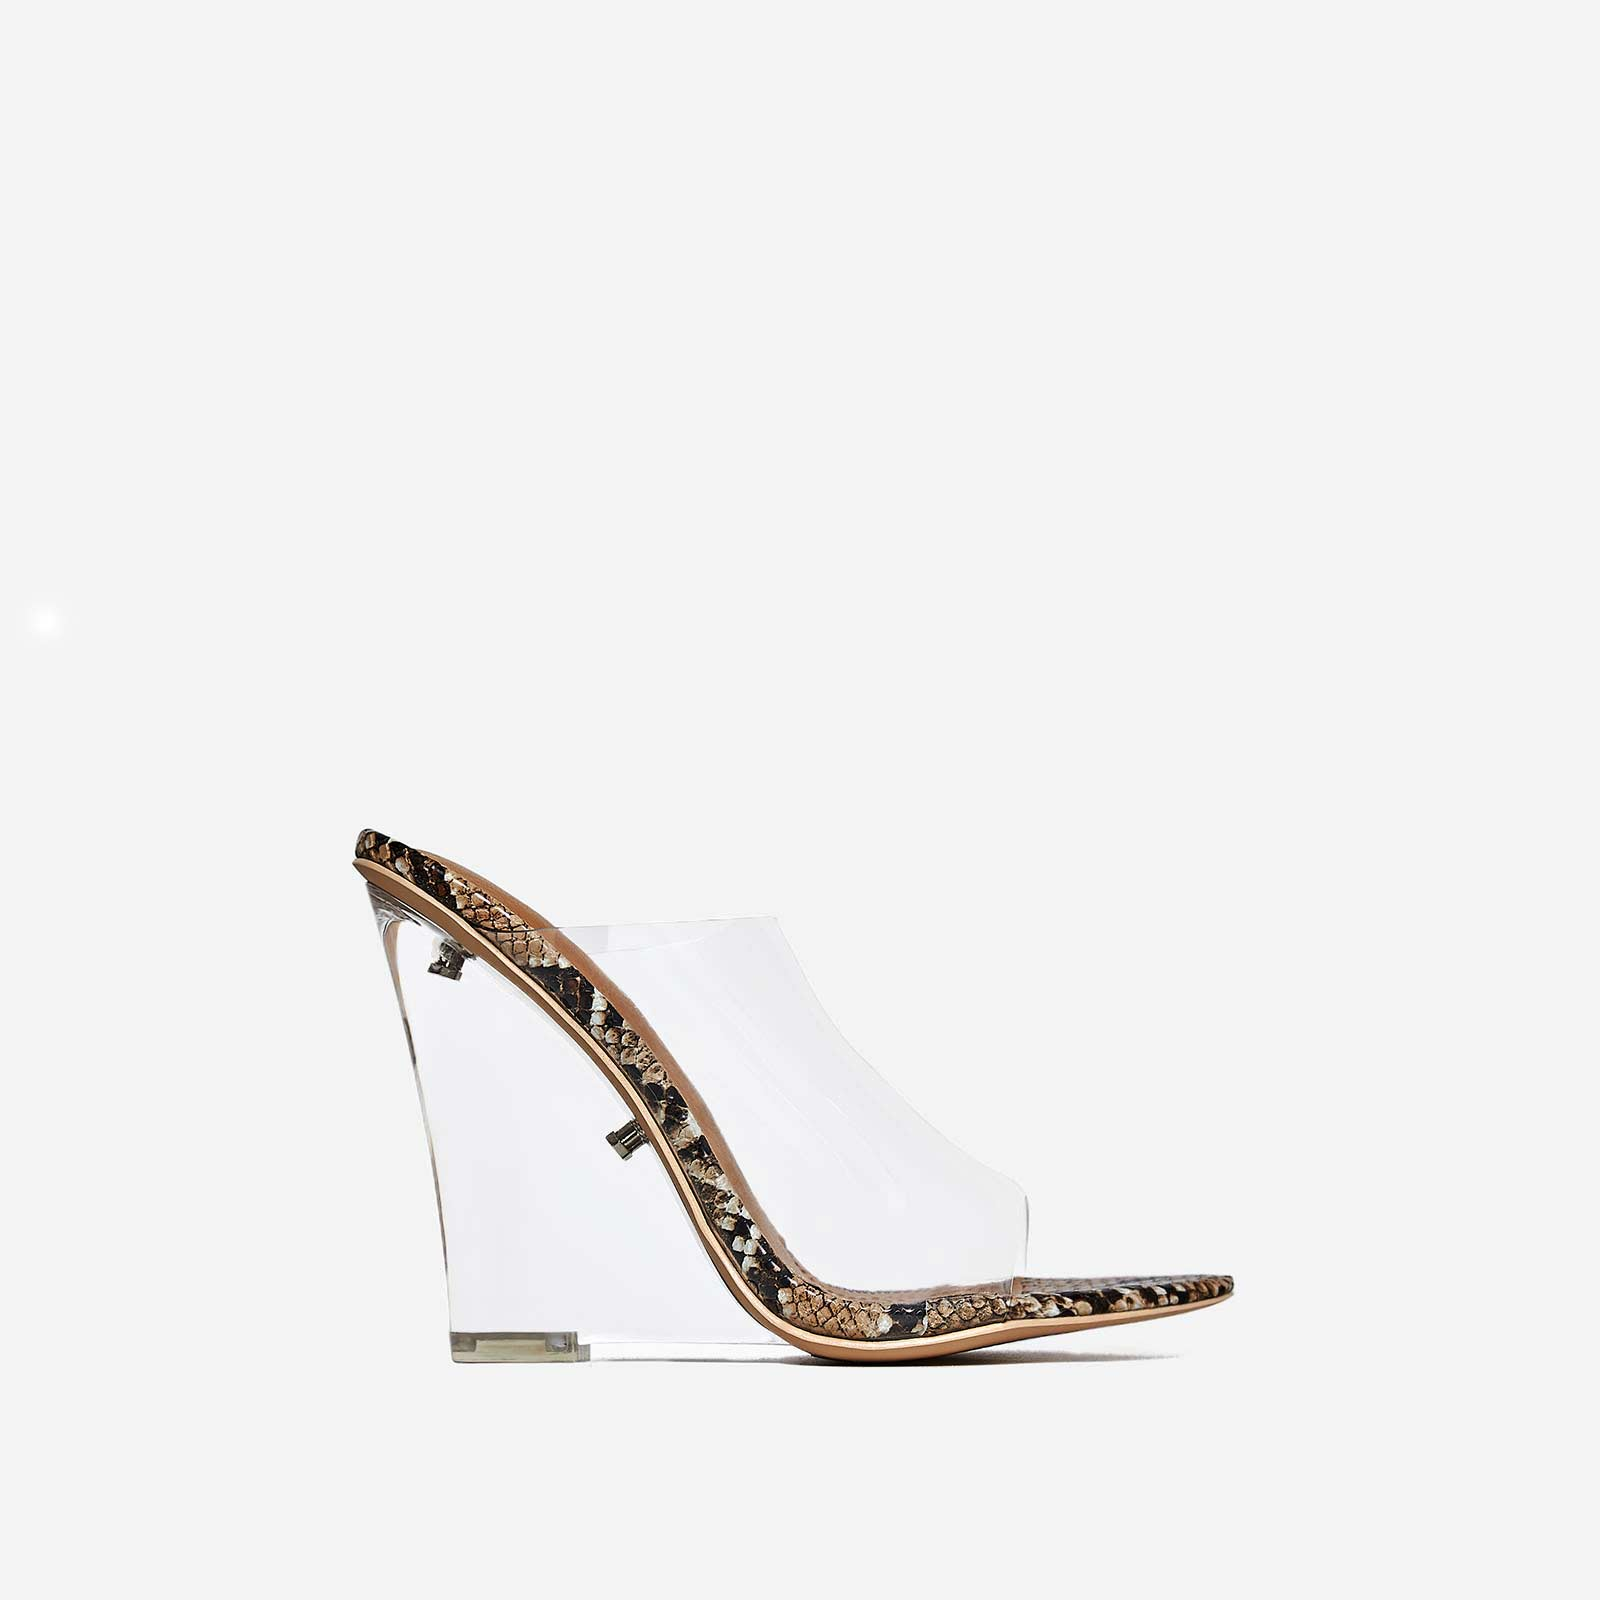 Lemonade Perspex Wedge Mule In Nude Snake Print Faux Leather